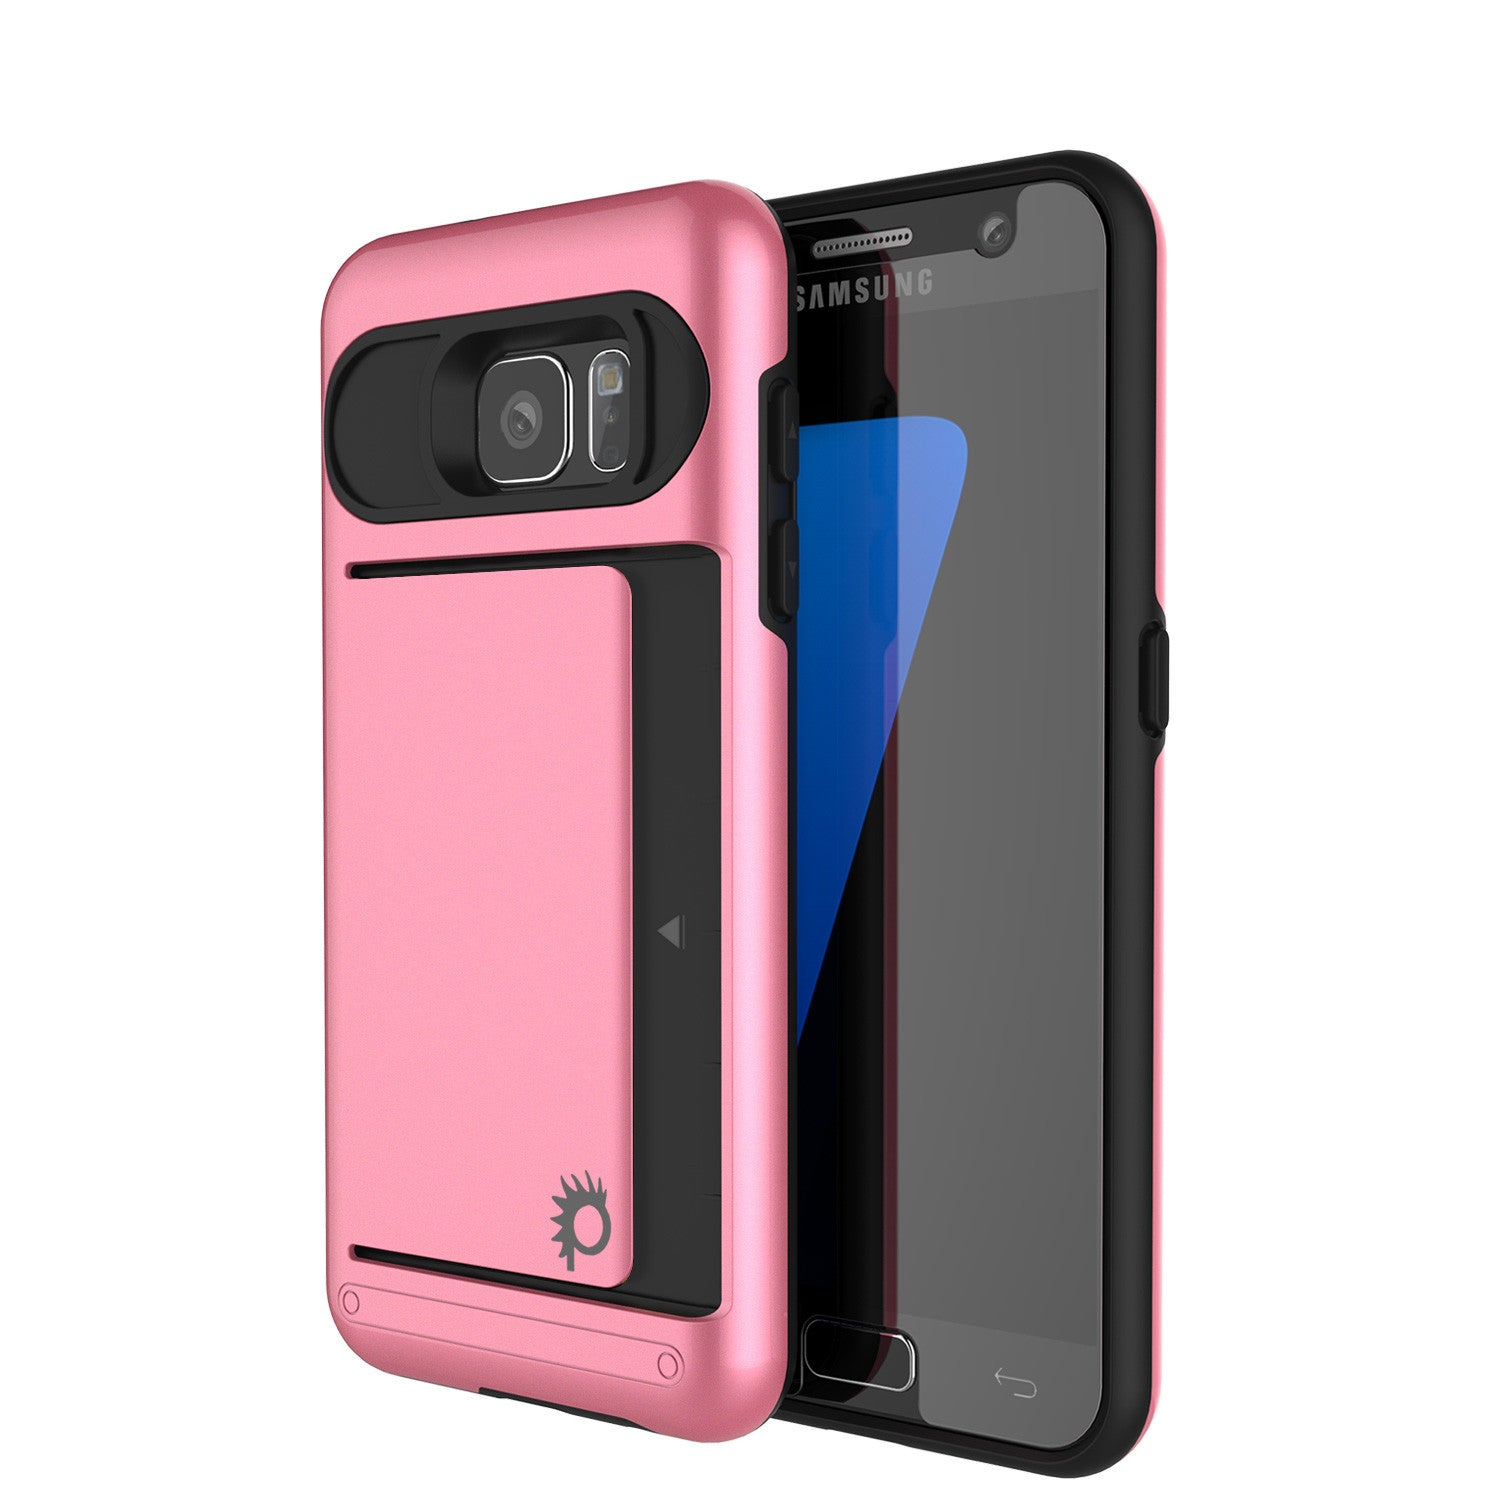 Galaxy S7 EDGE Case PunkCase CLUTCH Pink Series Slim Armor Soft Cover Case w/ Screen Protector